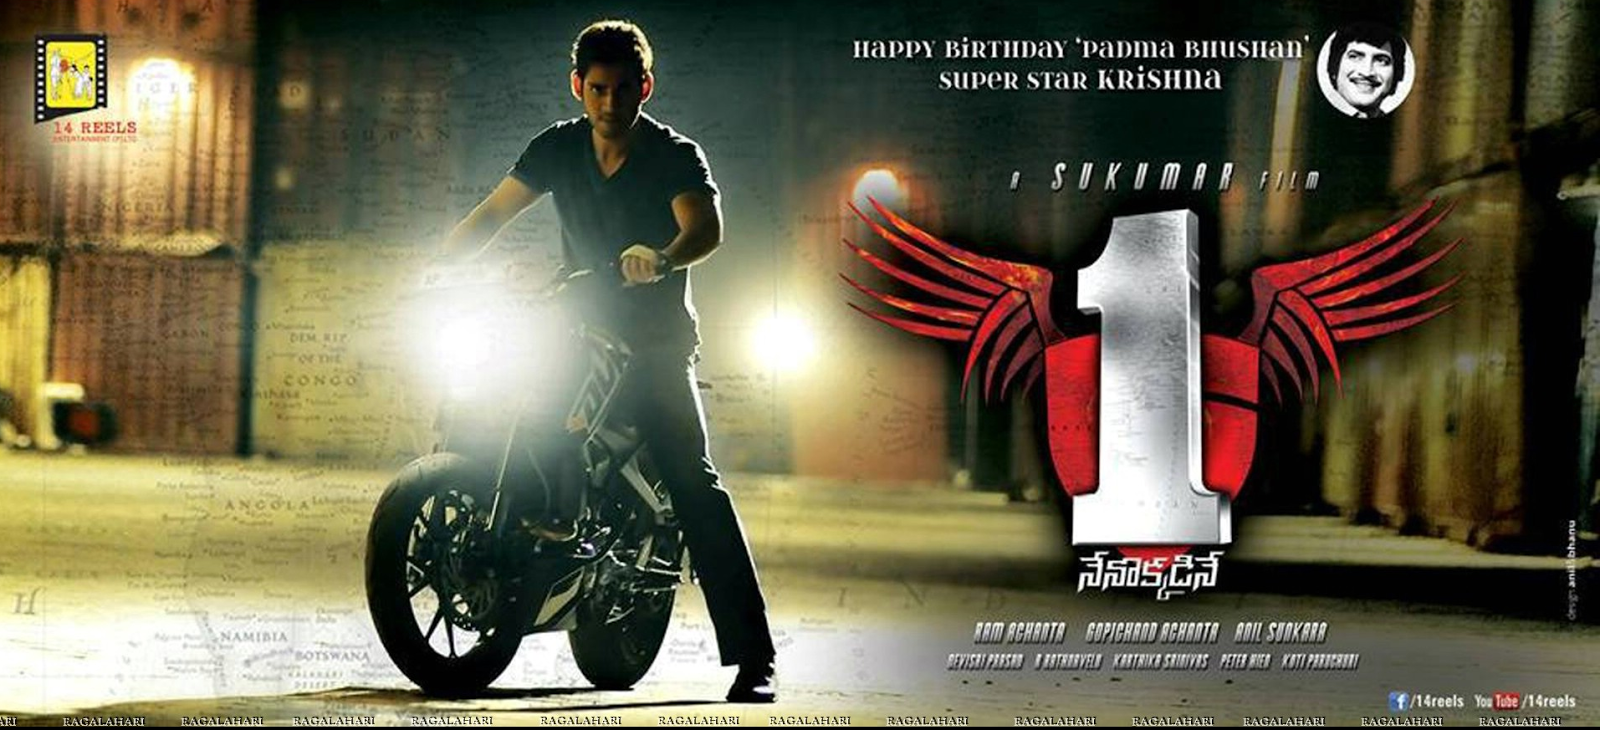 1 (One) Nenokkadine Movie Stills